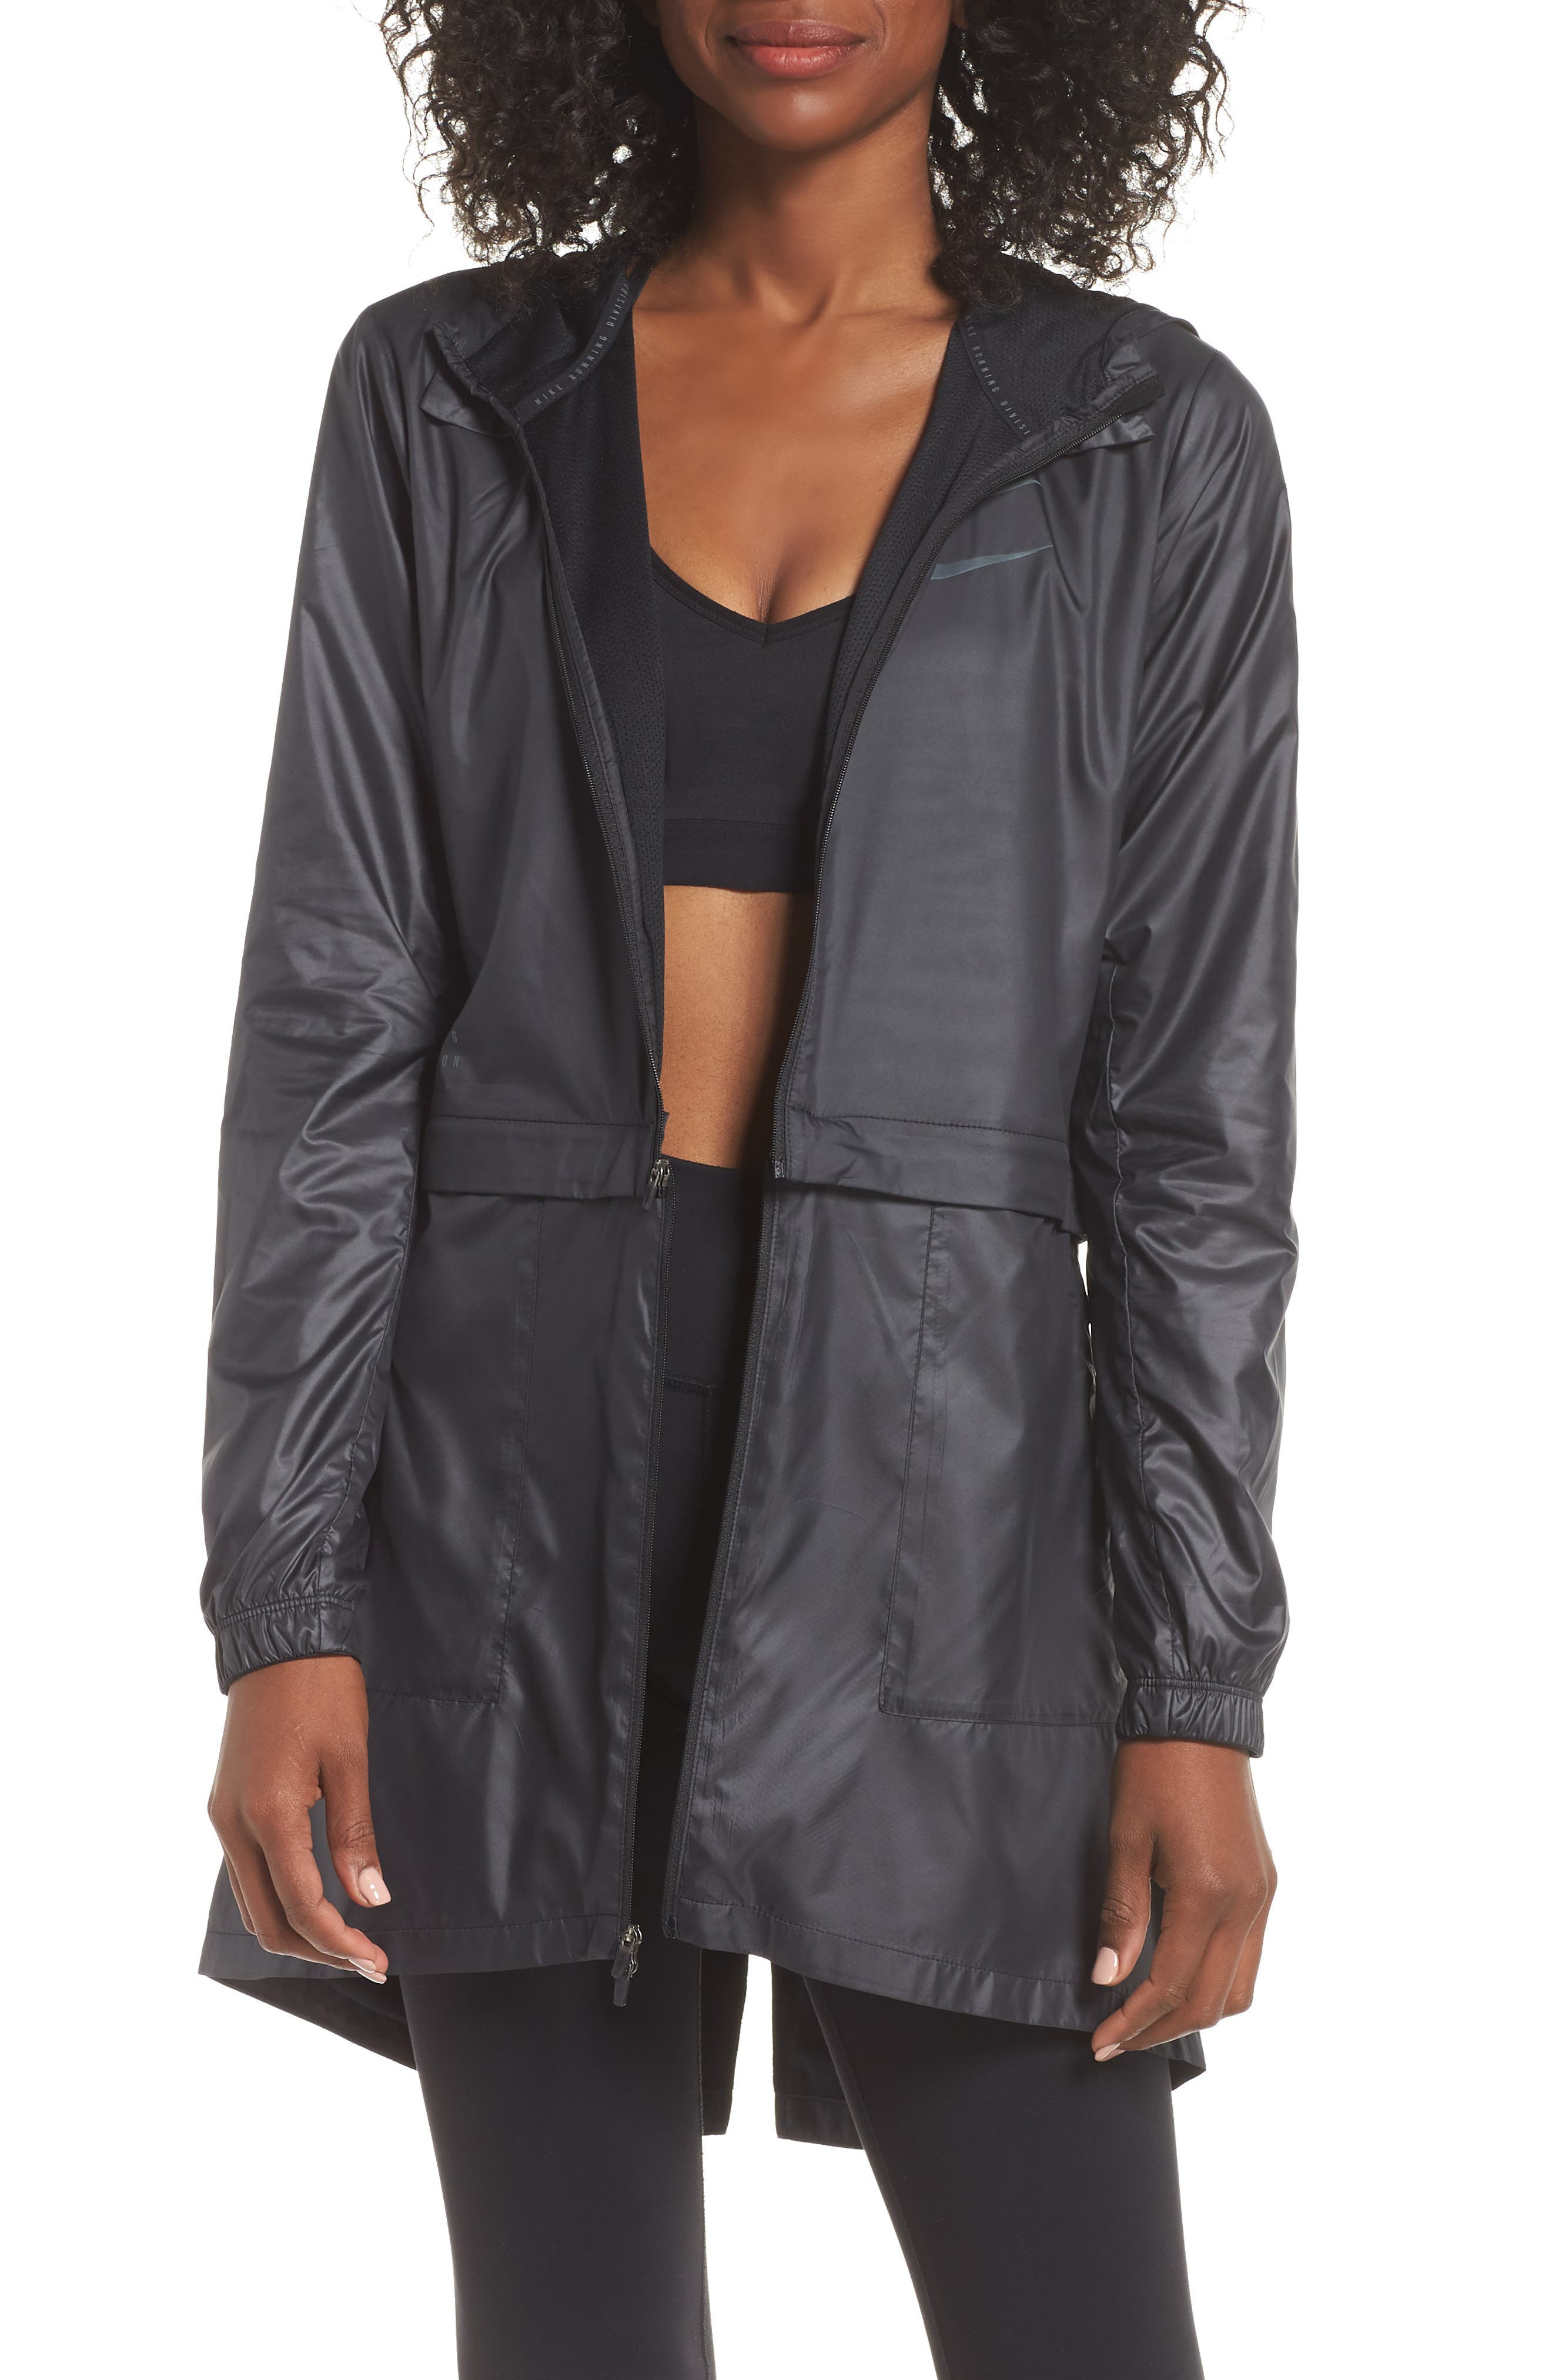 Women's Convertible Hooded Running Jacket, Main, color, 010